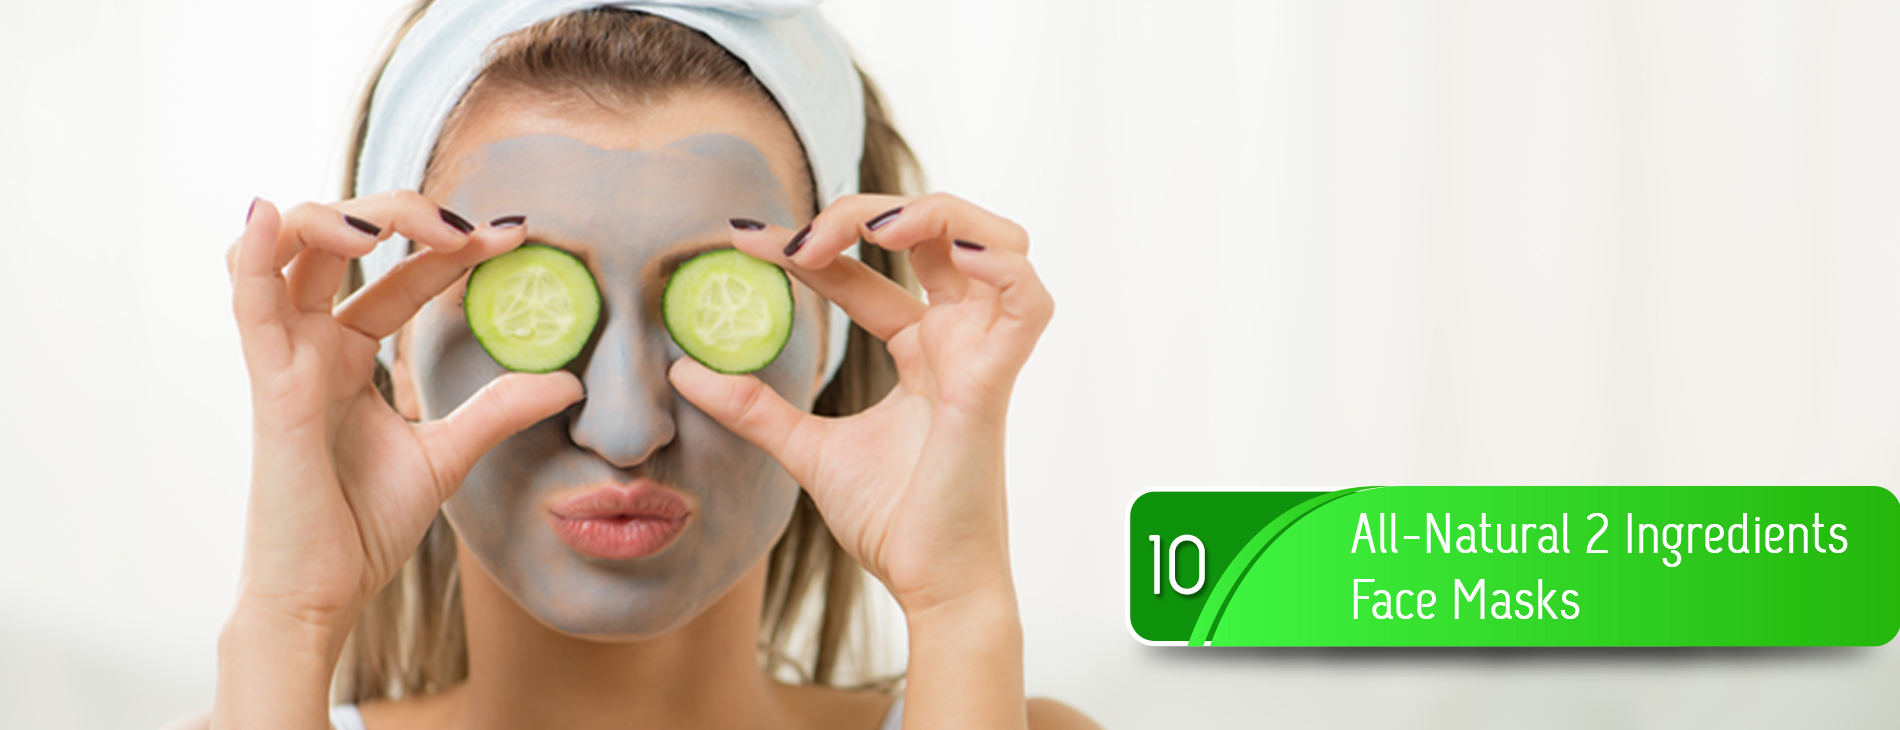 10-All-Natural-2-Ingredients-Face-Masks